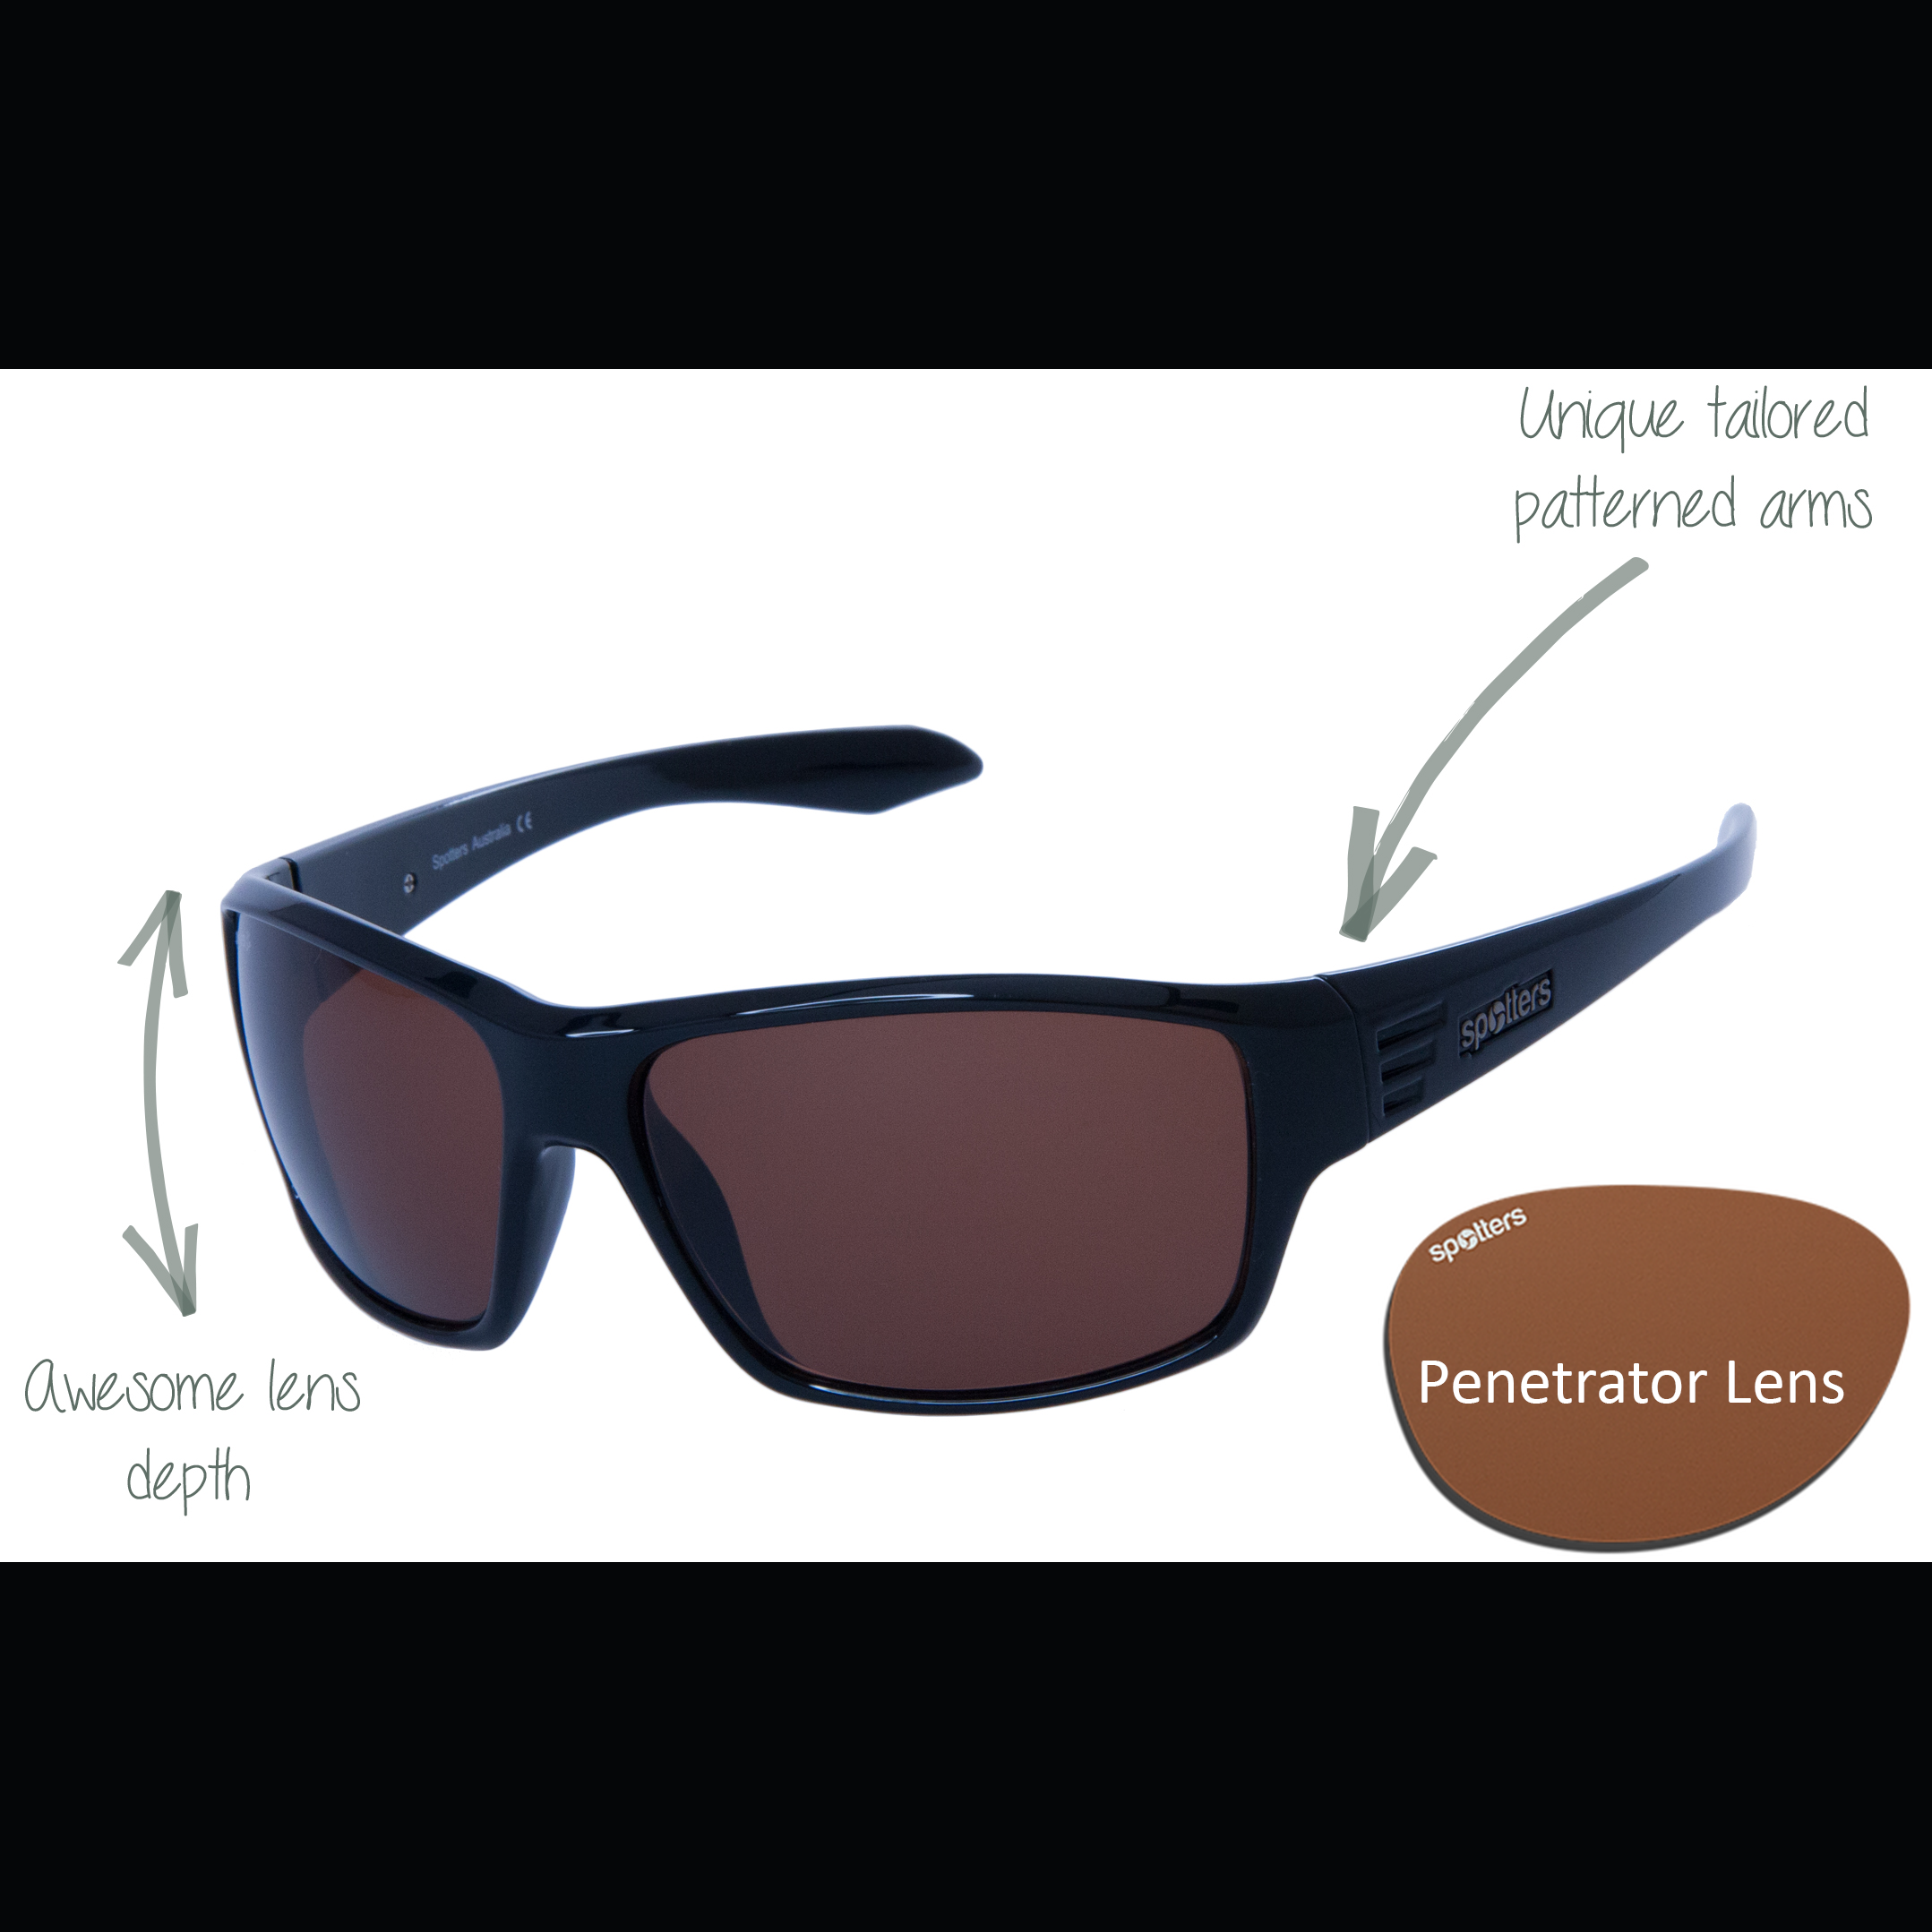 3267ca6461 Spotters Sunglasses - Blaze - Gloss Black Frame with Penetrator Lens ...